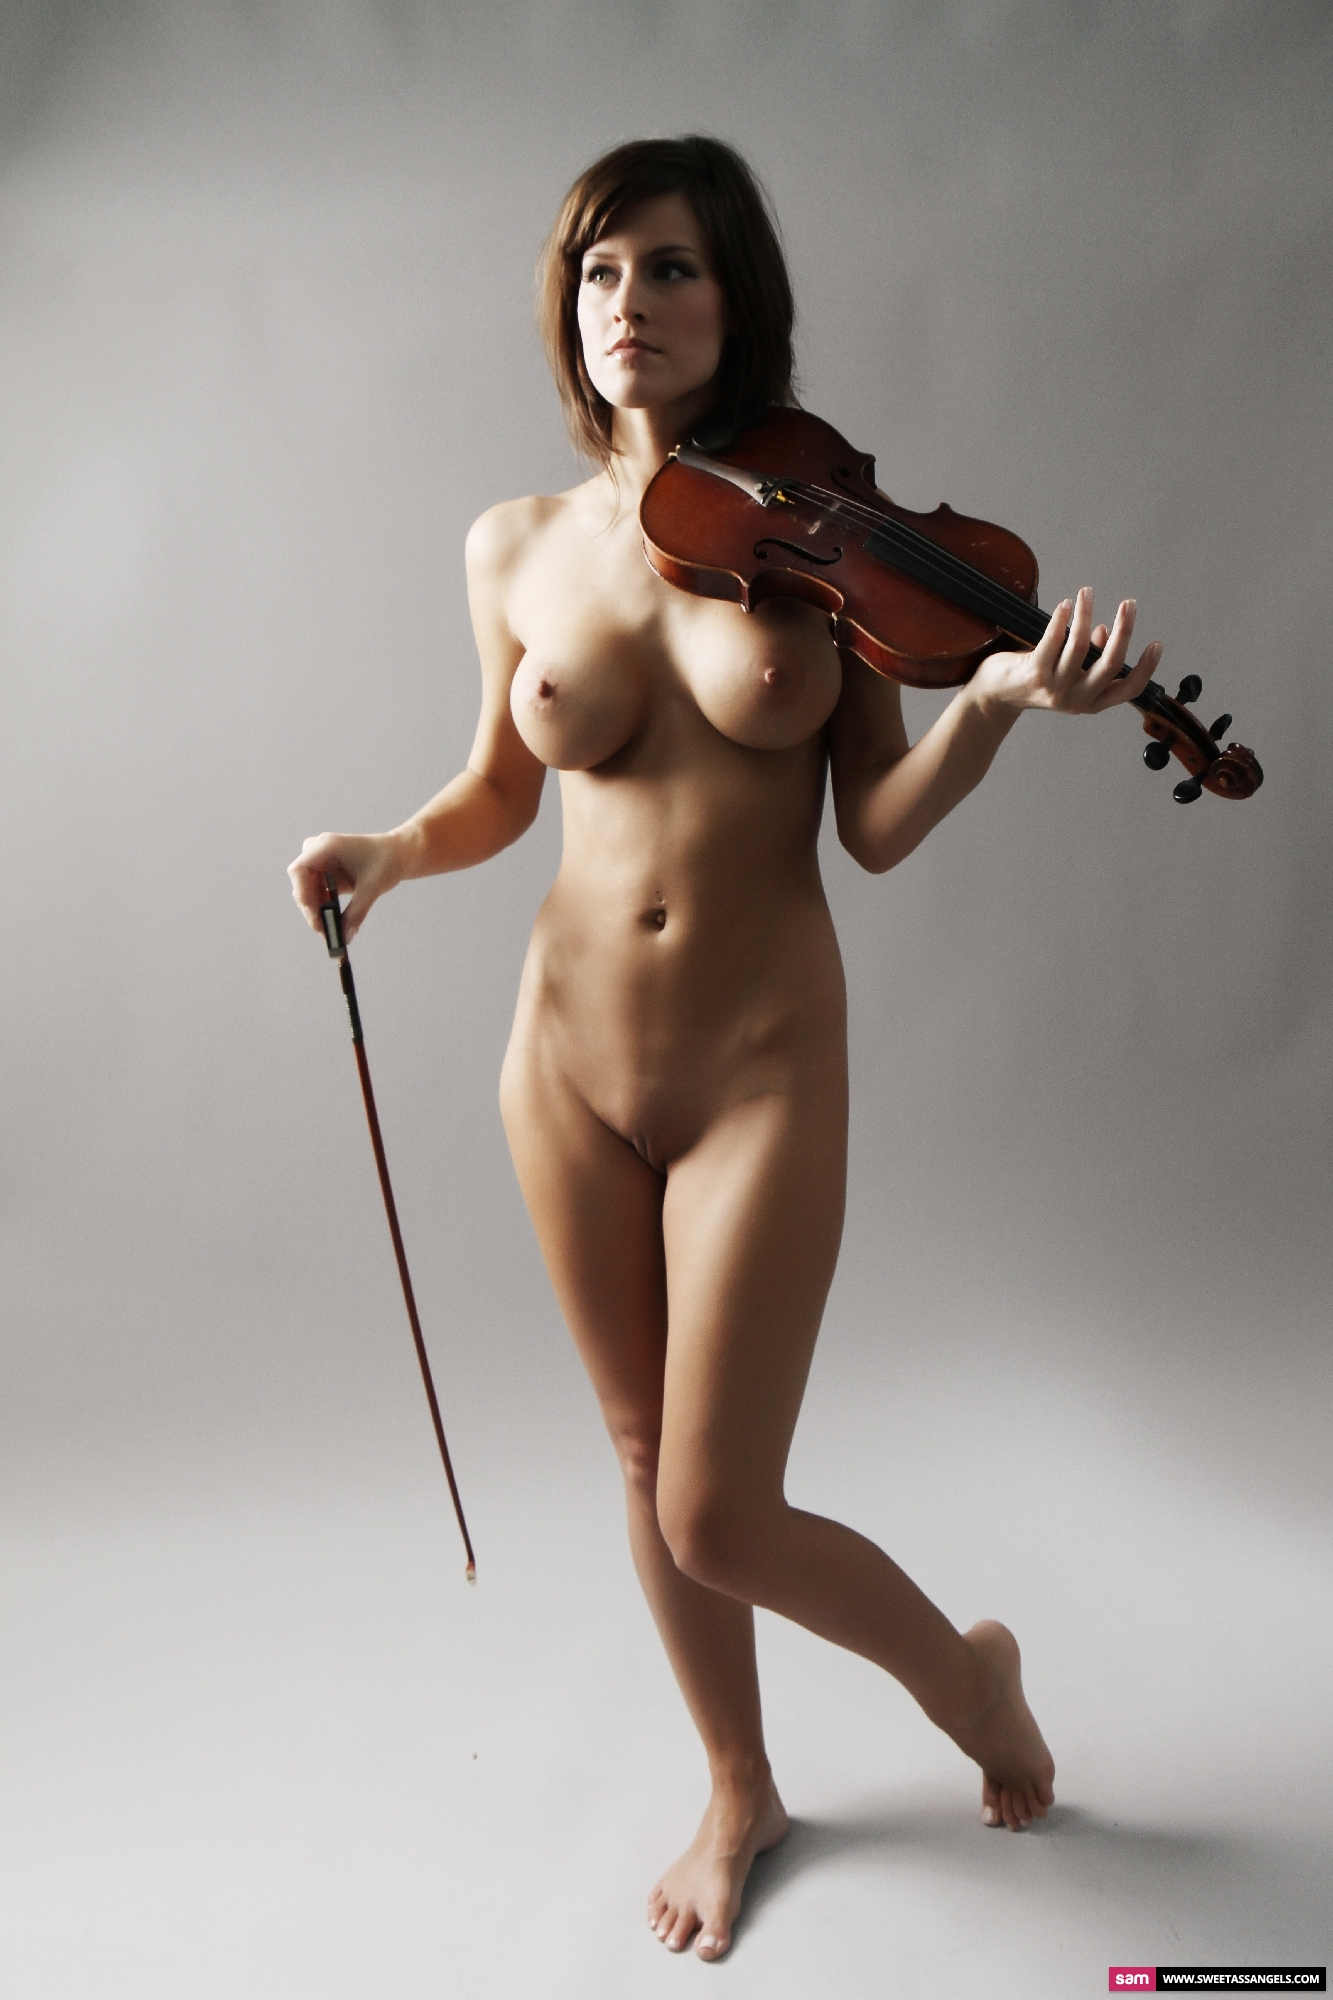 Woman sexy violin nude playing